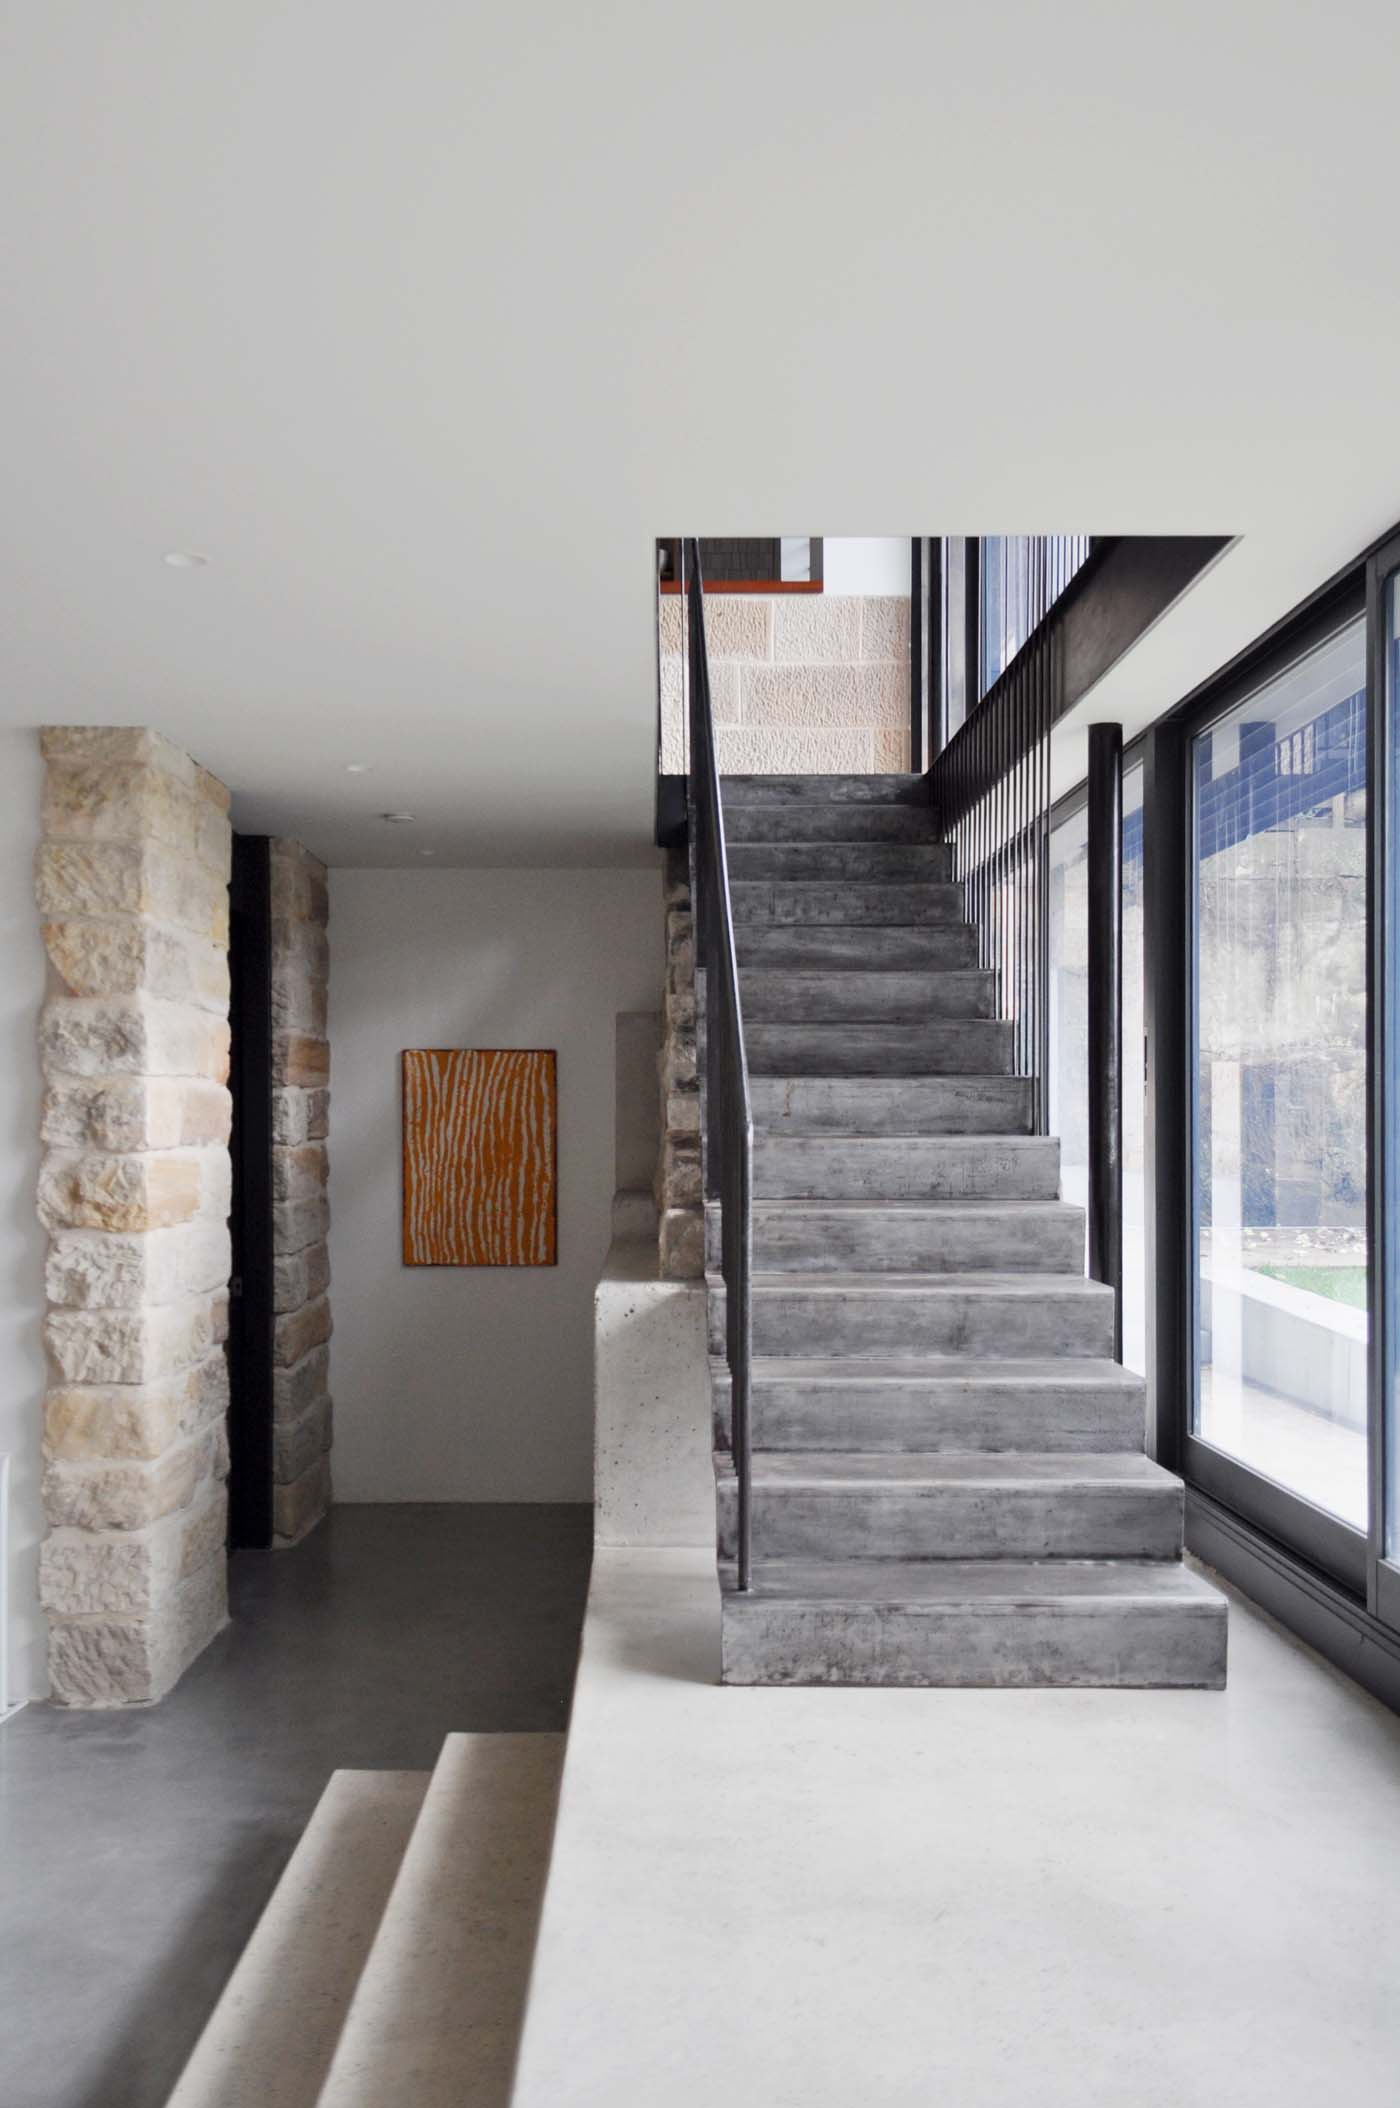 Balmain Cottage by award winning Sydney firm Sam Crawford Architects. Modern raw steel staircase within heritage listed house